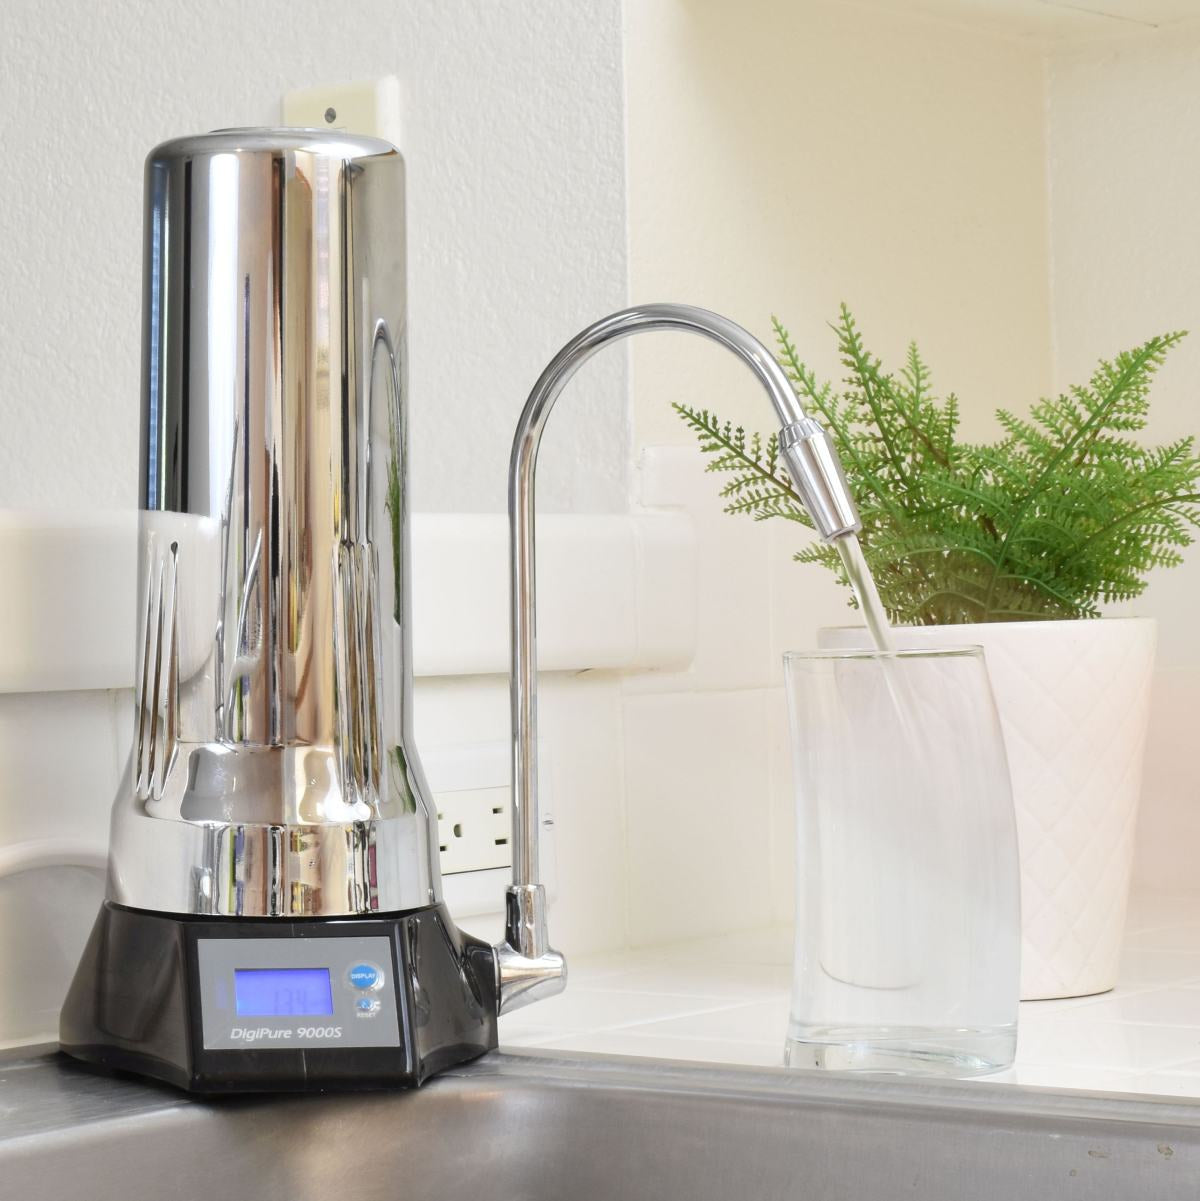 Clearance Half Price Sale - Open Box - DigiPure Smart Water Filter System with LCD display & Alarm